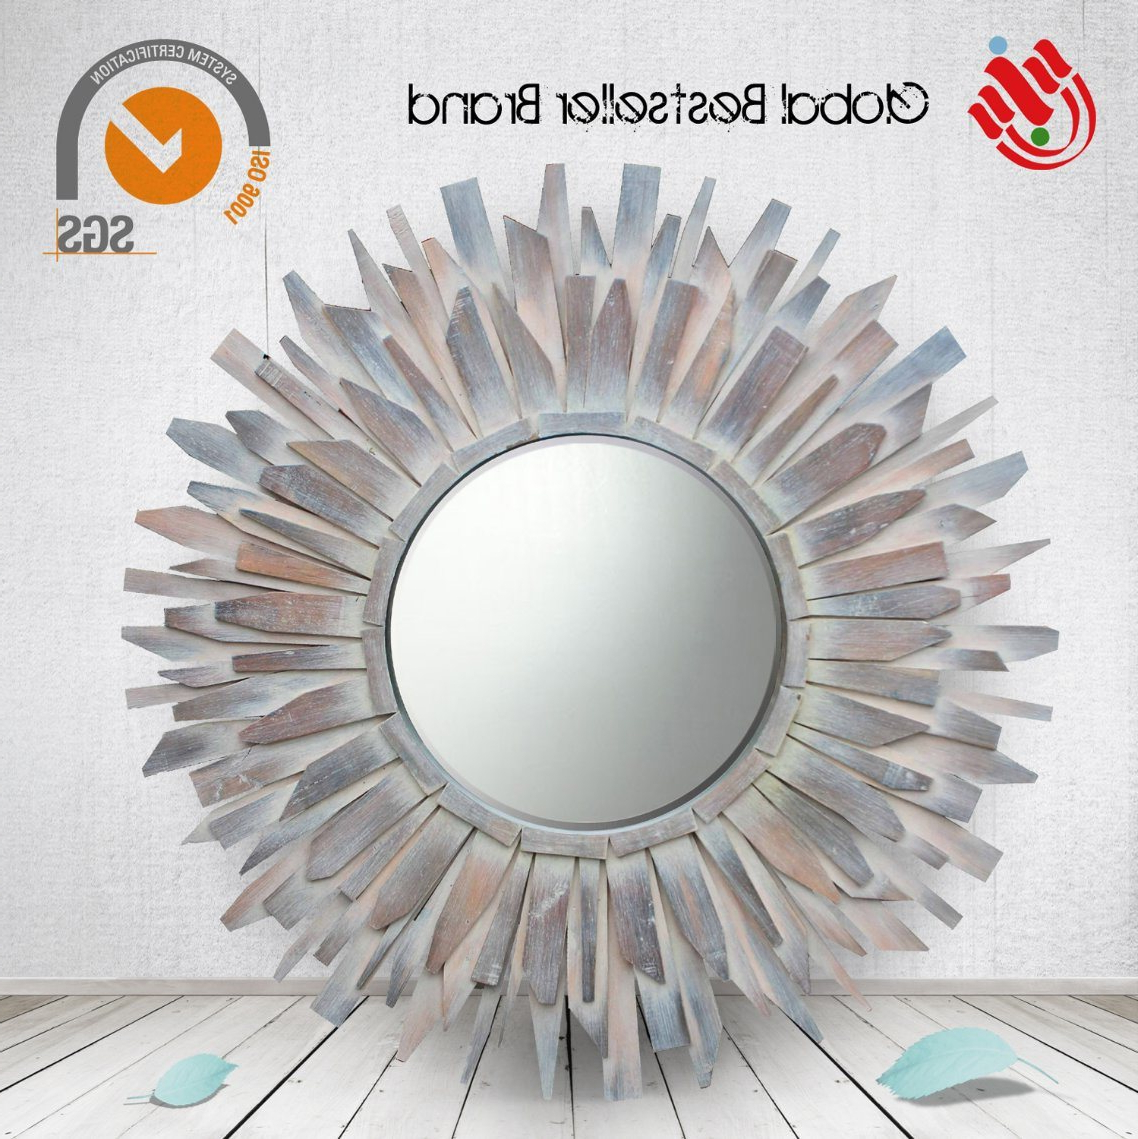 [%[Hot Item] Sun Shape Mirror Wooden Art Decorative Wall Mirror (Lh M170603) With Most Recent Sun Shaped Wall Mirrors|Sun Shaped Wall Mirrors Pertaining To Most Recent [Hot Item] Sun Shape Mirror Wooden Art Decorative Wall Mirror (Lh M170603)|Favorite Sun Shaped Wall Mirrors With [Hot Item] Sun Shape Mirror Wooden Art Decorative Wall Mirror (Lh M170603)|2020 [Hot Item] Sun Shape Mirror Wooden Art Decorative Wall Mirror (Lh M170603) In Sun Shaped Wall Mirrors%] (View 1 of 20)